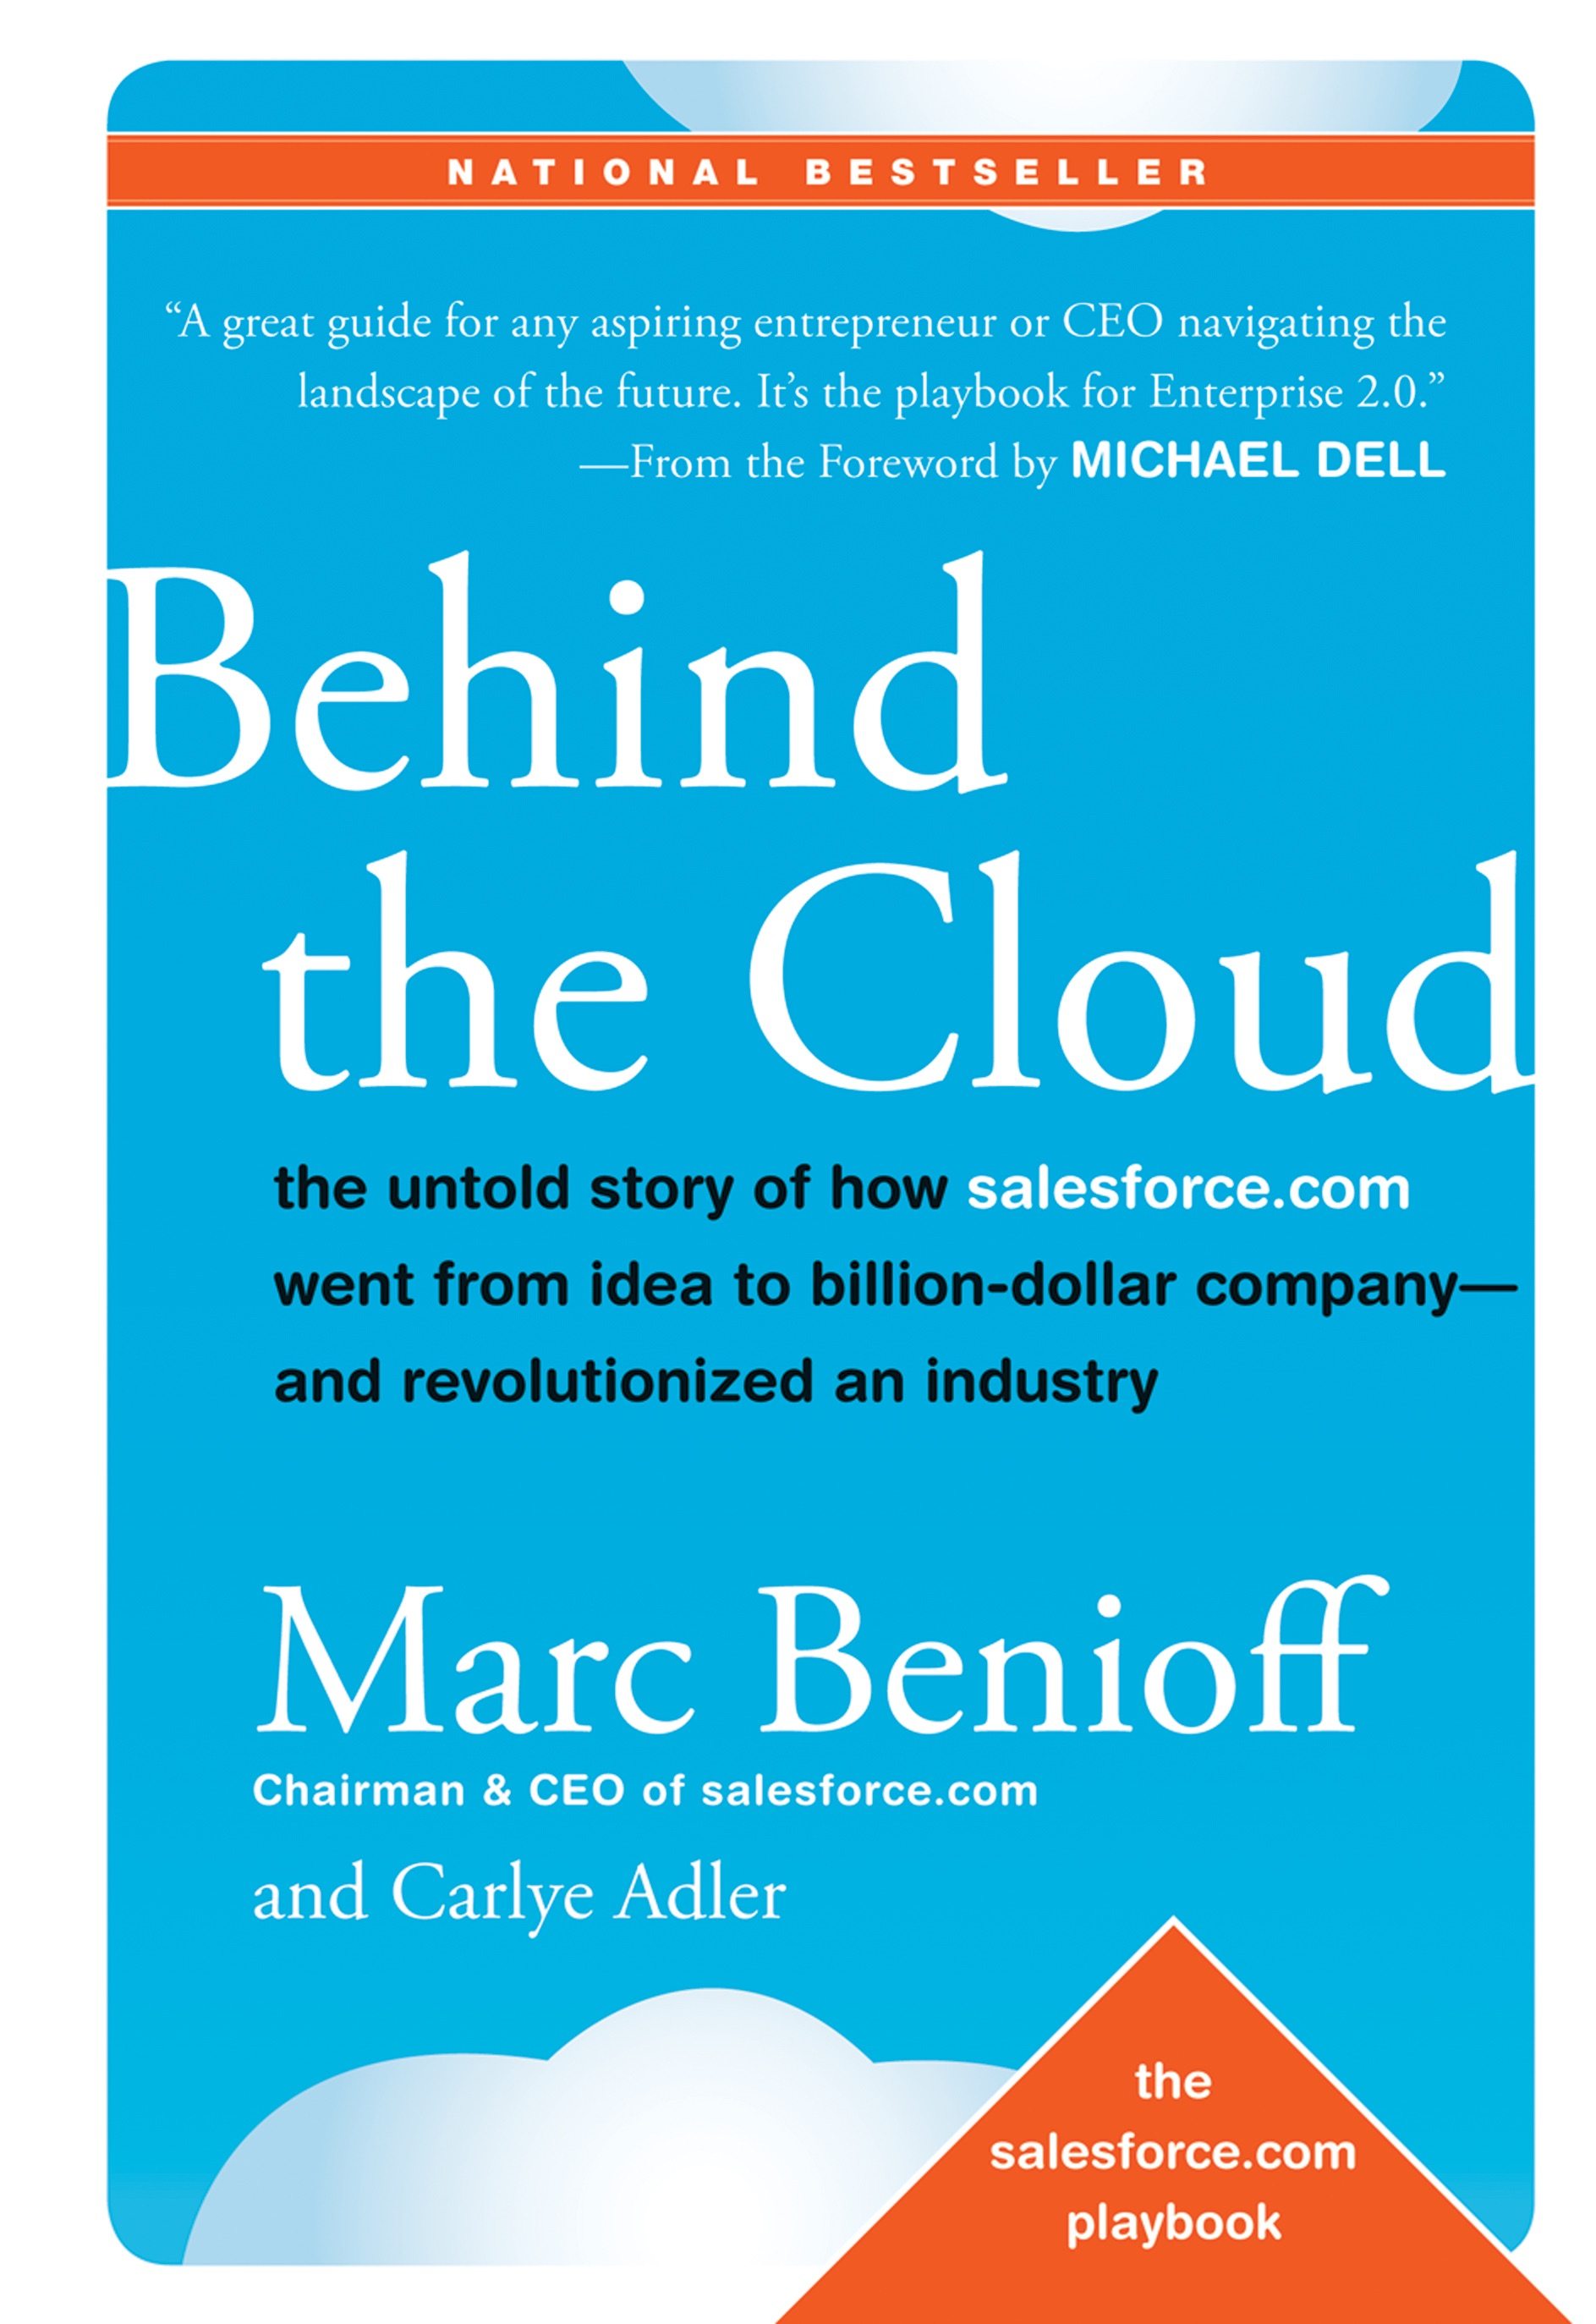 Book Cover of Behind the Cloud